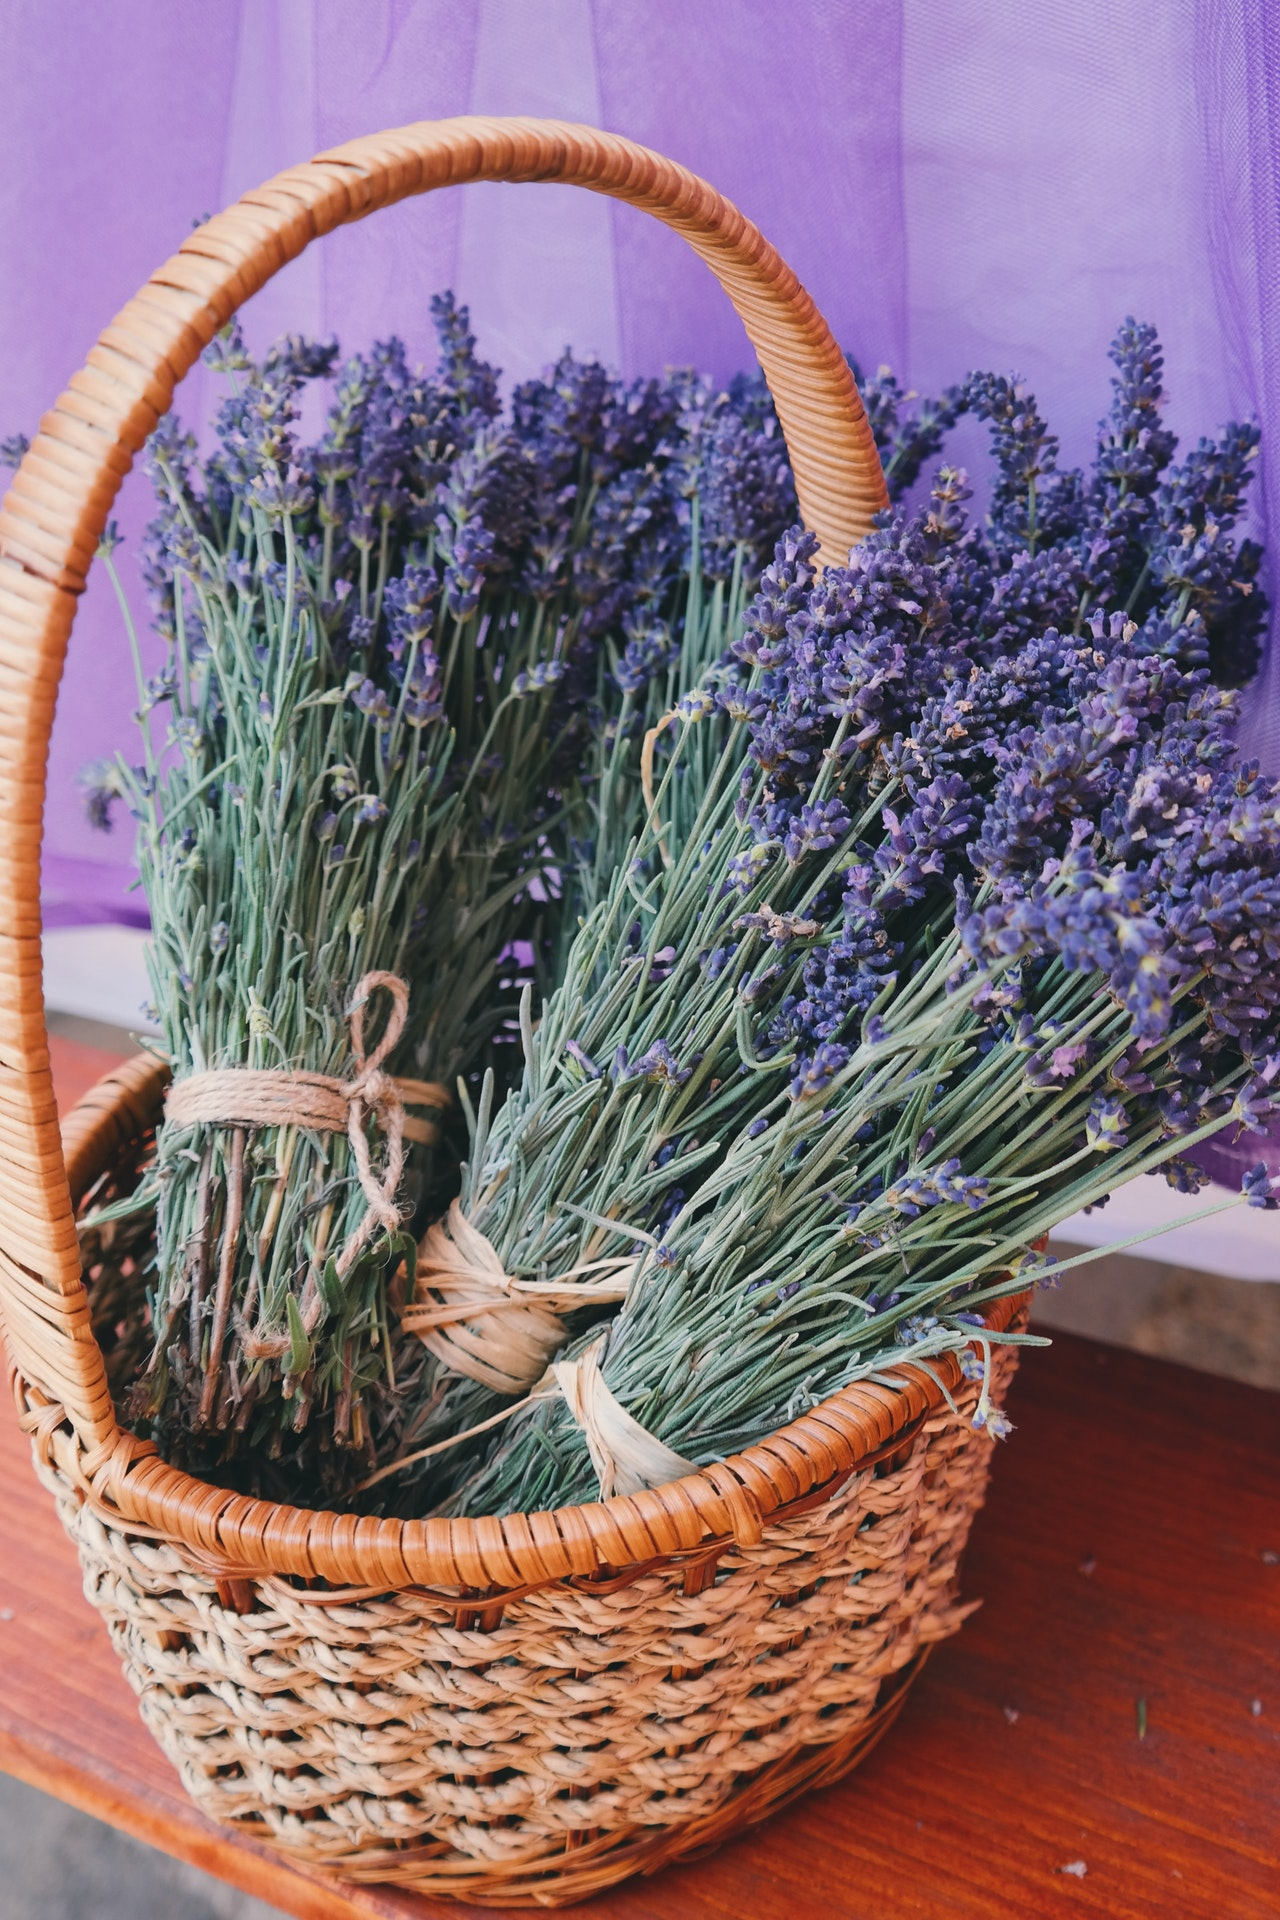 Benefits of lavender - What are benefits of Lavender Oil?